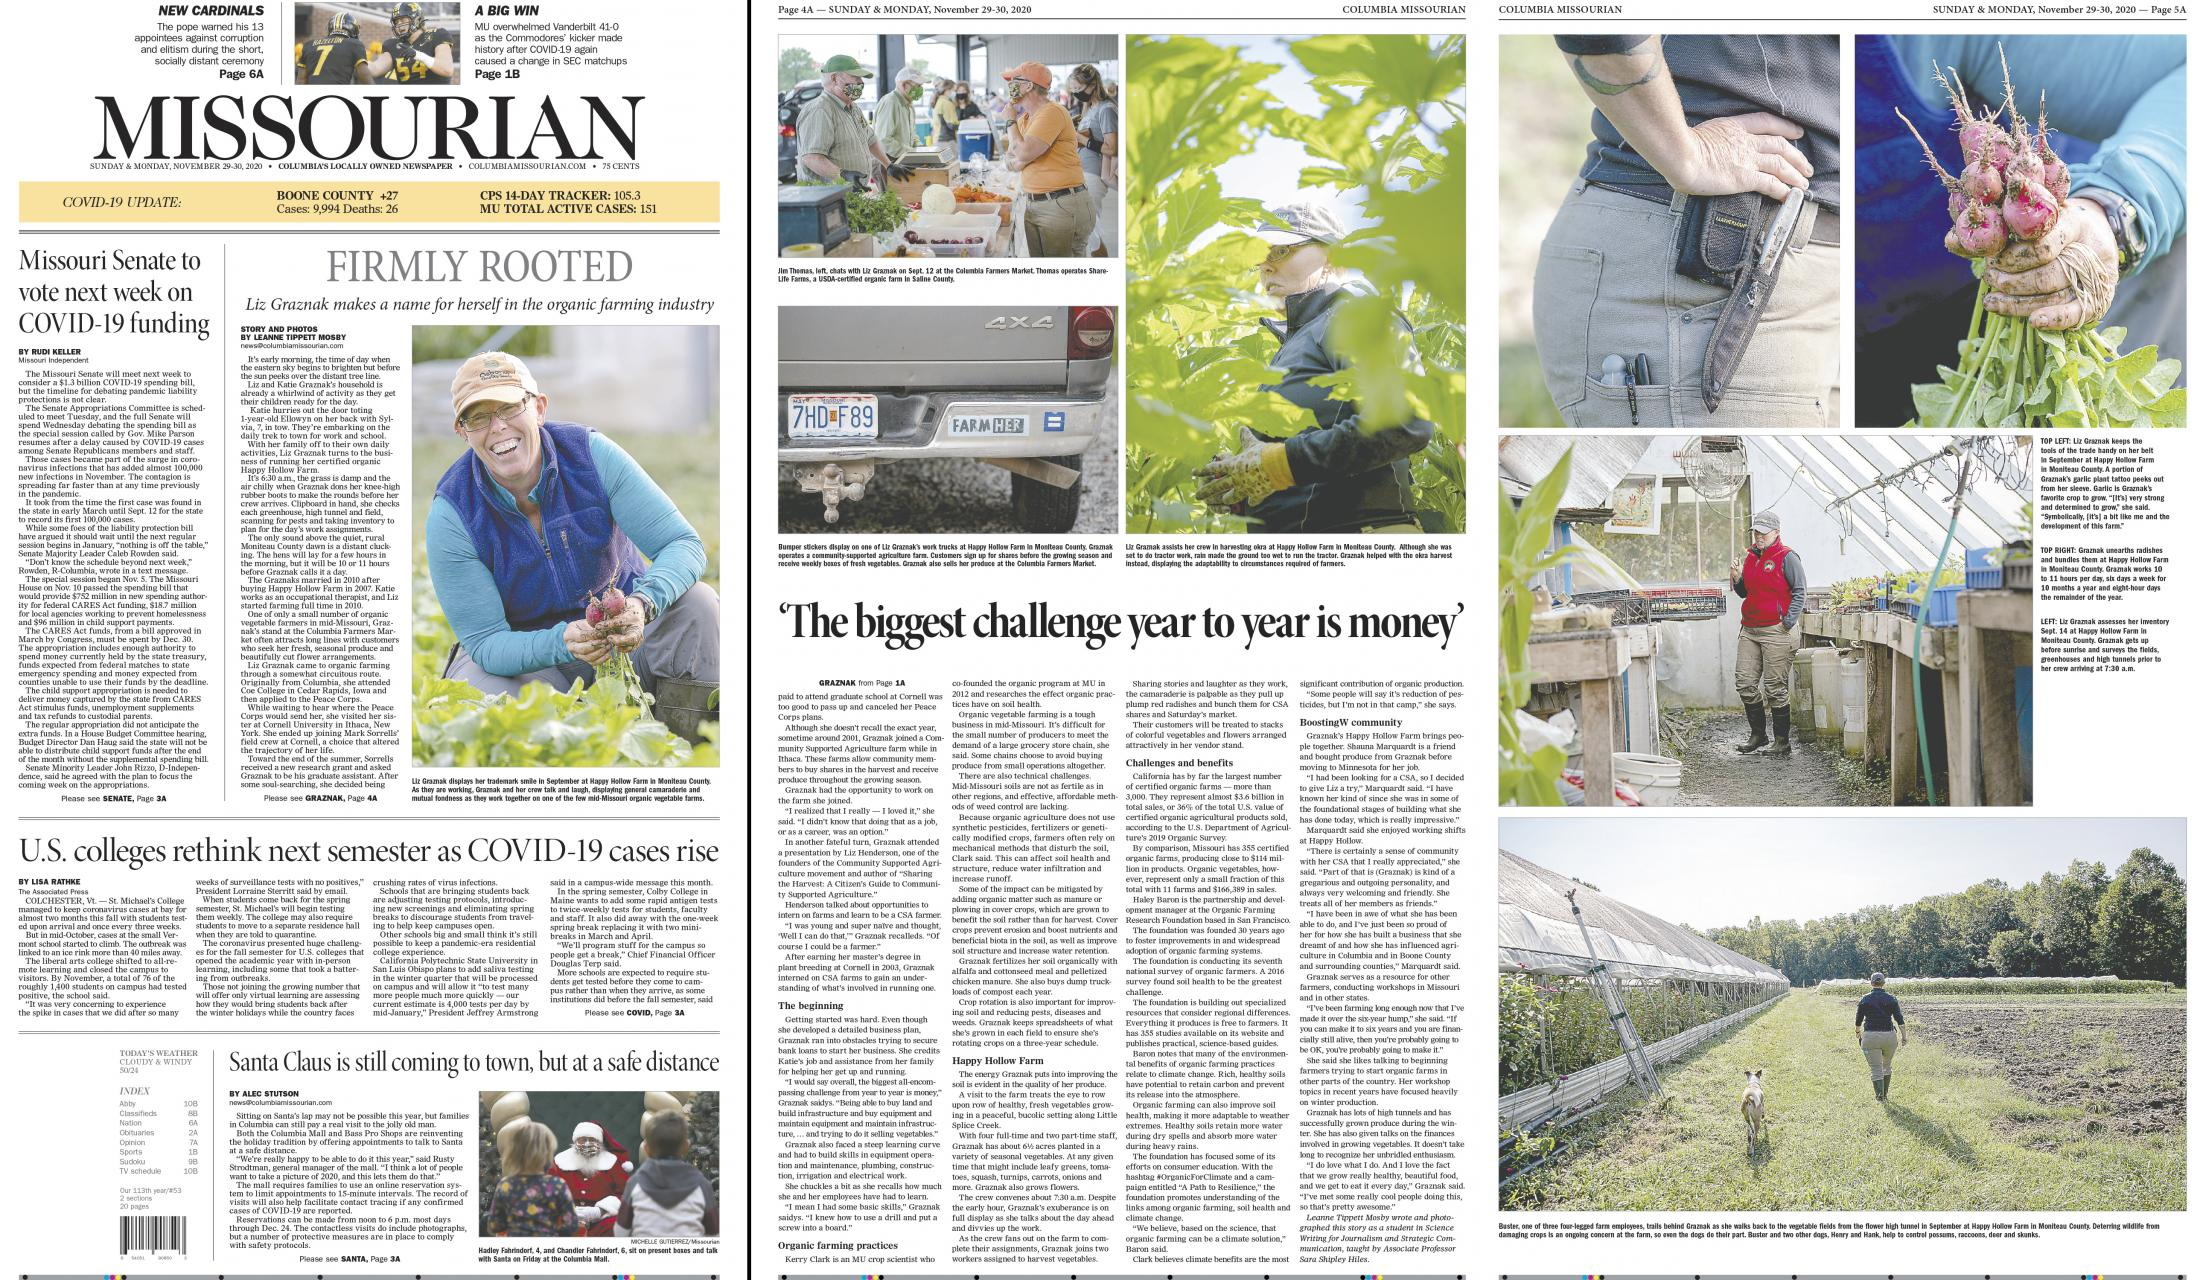 I worked with photo editor Ethan Weston and photographer and Leanne Tippett Mosby to edit images to accompany Mosby's article on local farmer Liz Graznak. Weston and I also designed the print and digital products for this story. This is the print product with the digital product located here .